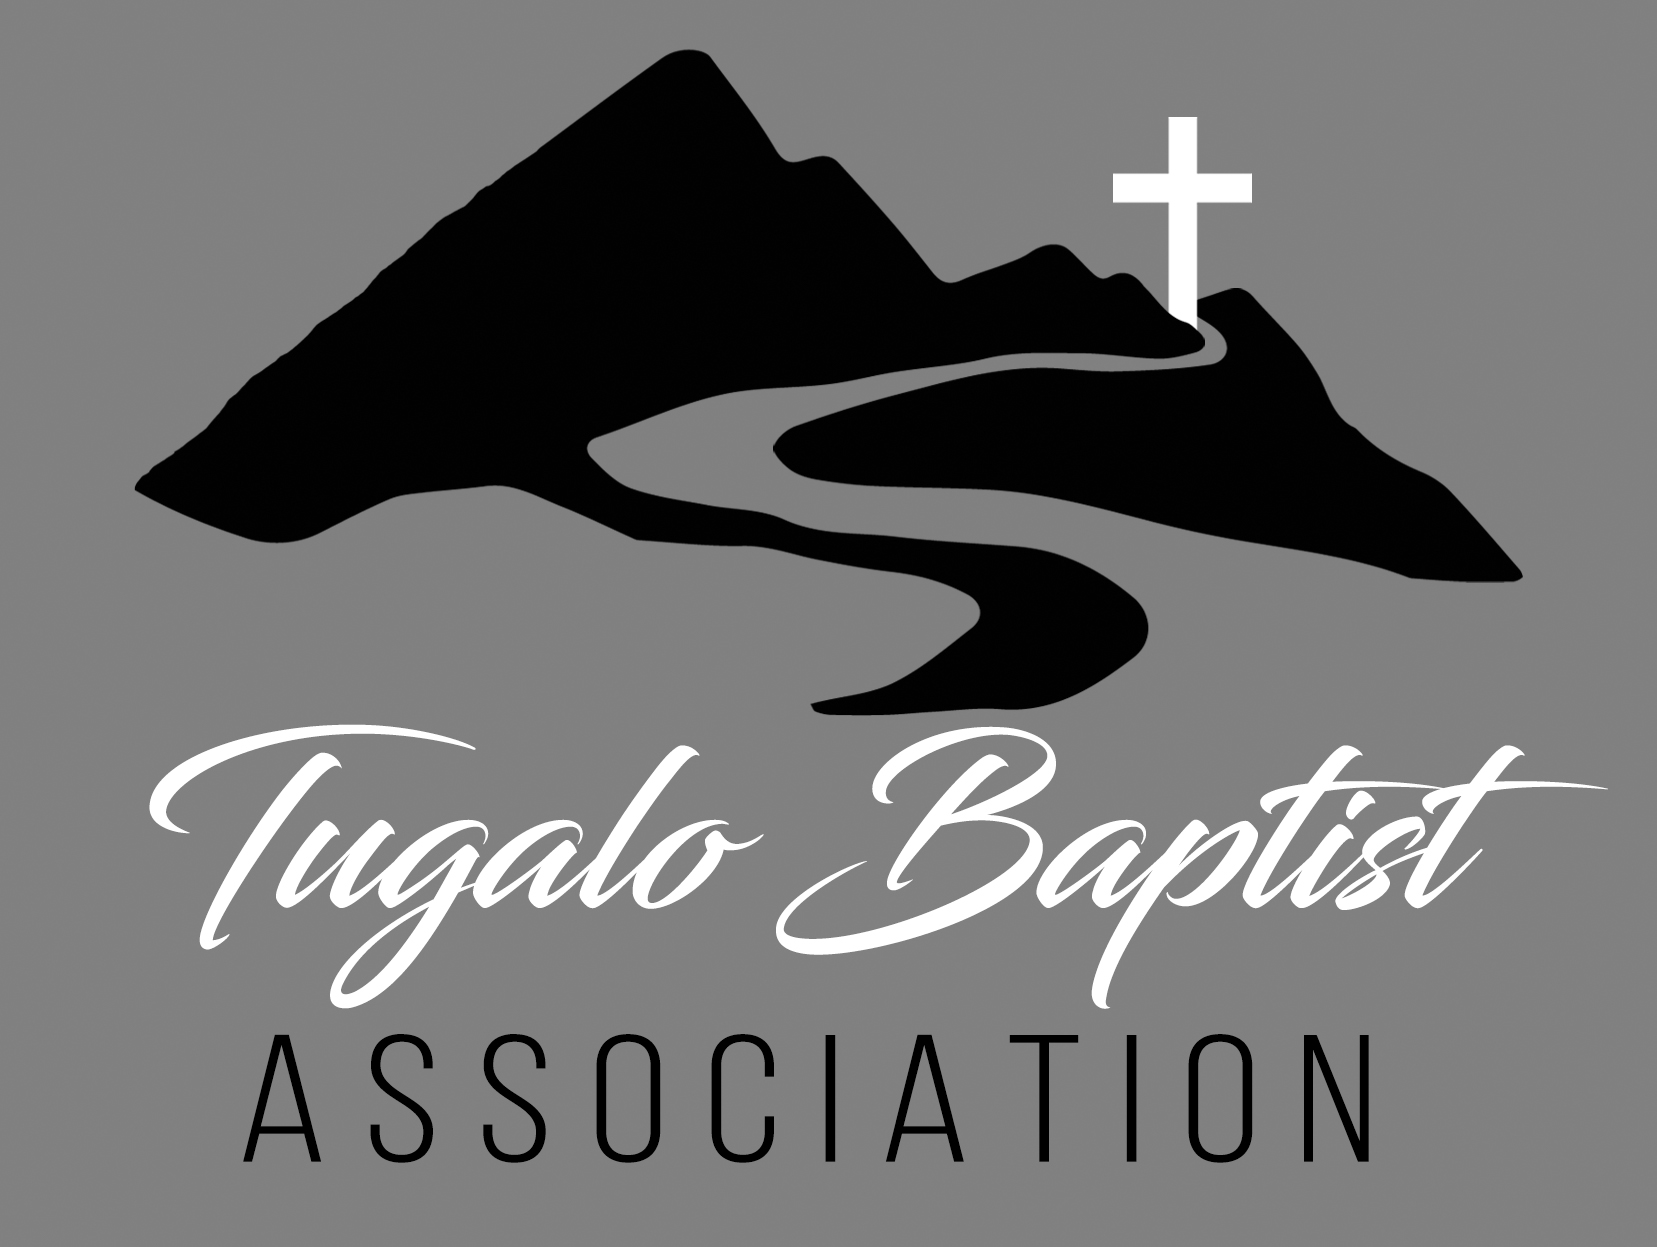 H E A R T Ministry | Tugalo Baptist Association